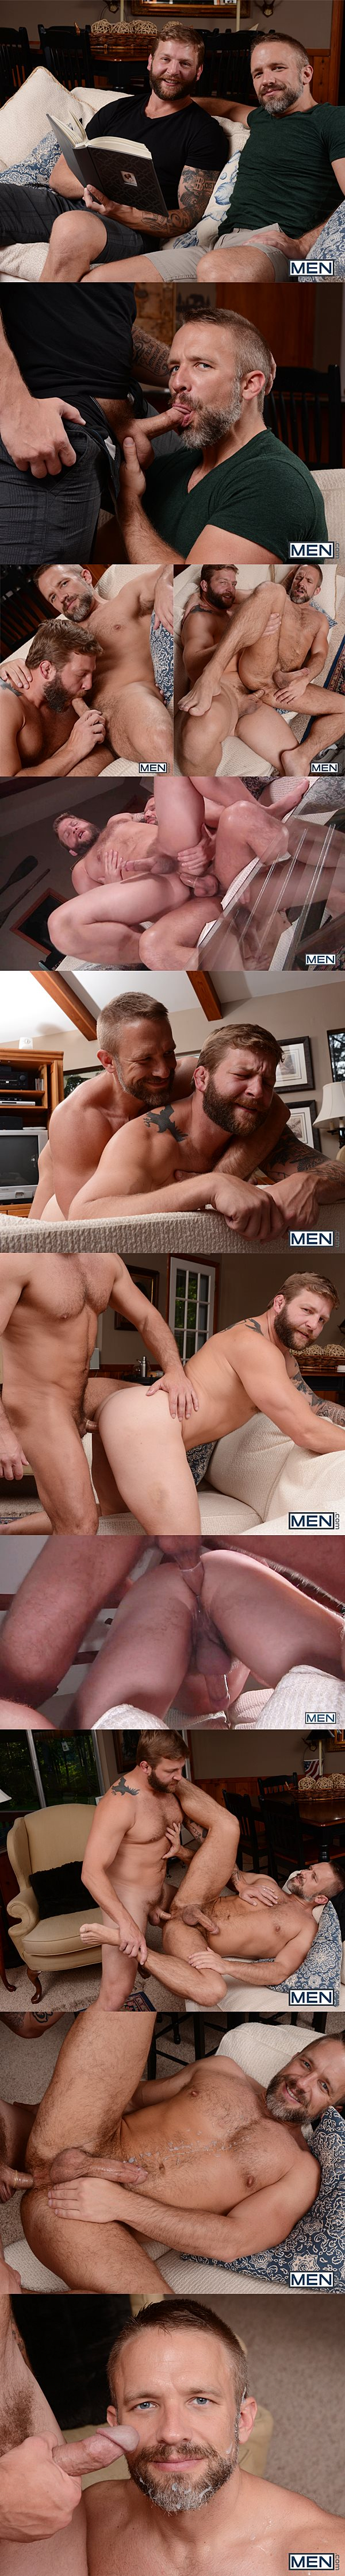 Sexy muscled Colby Jansen & Dirk Caber flip-fuck and Dirk cums while getting fucked in Son Swap at Drillmyhole 02